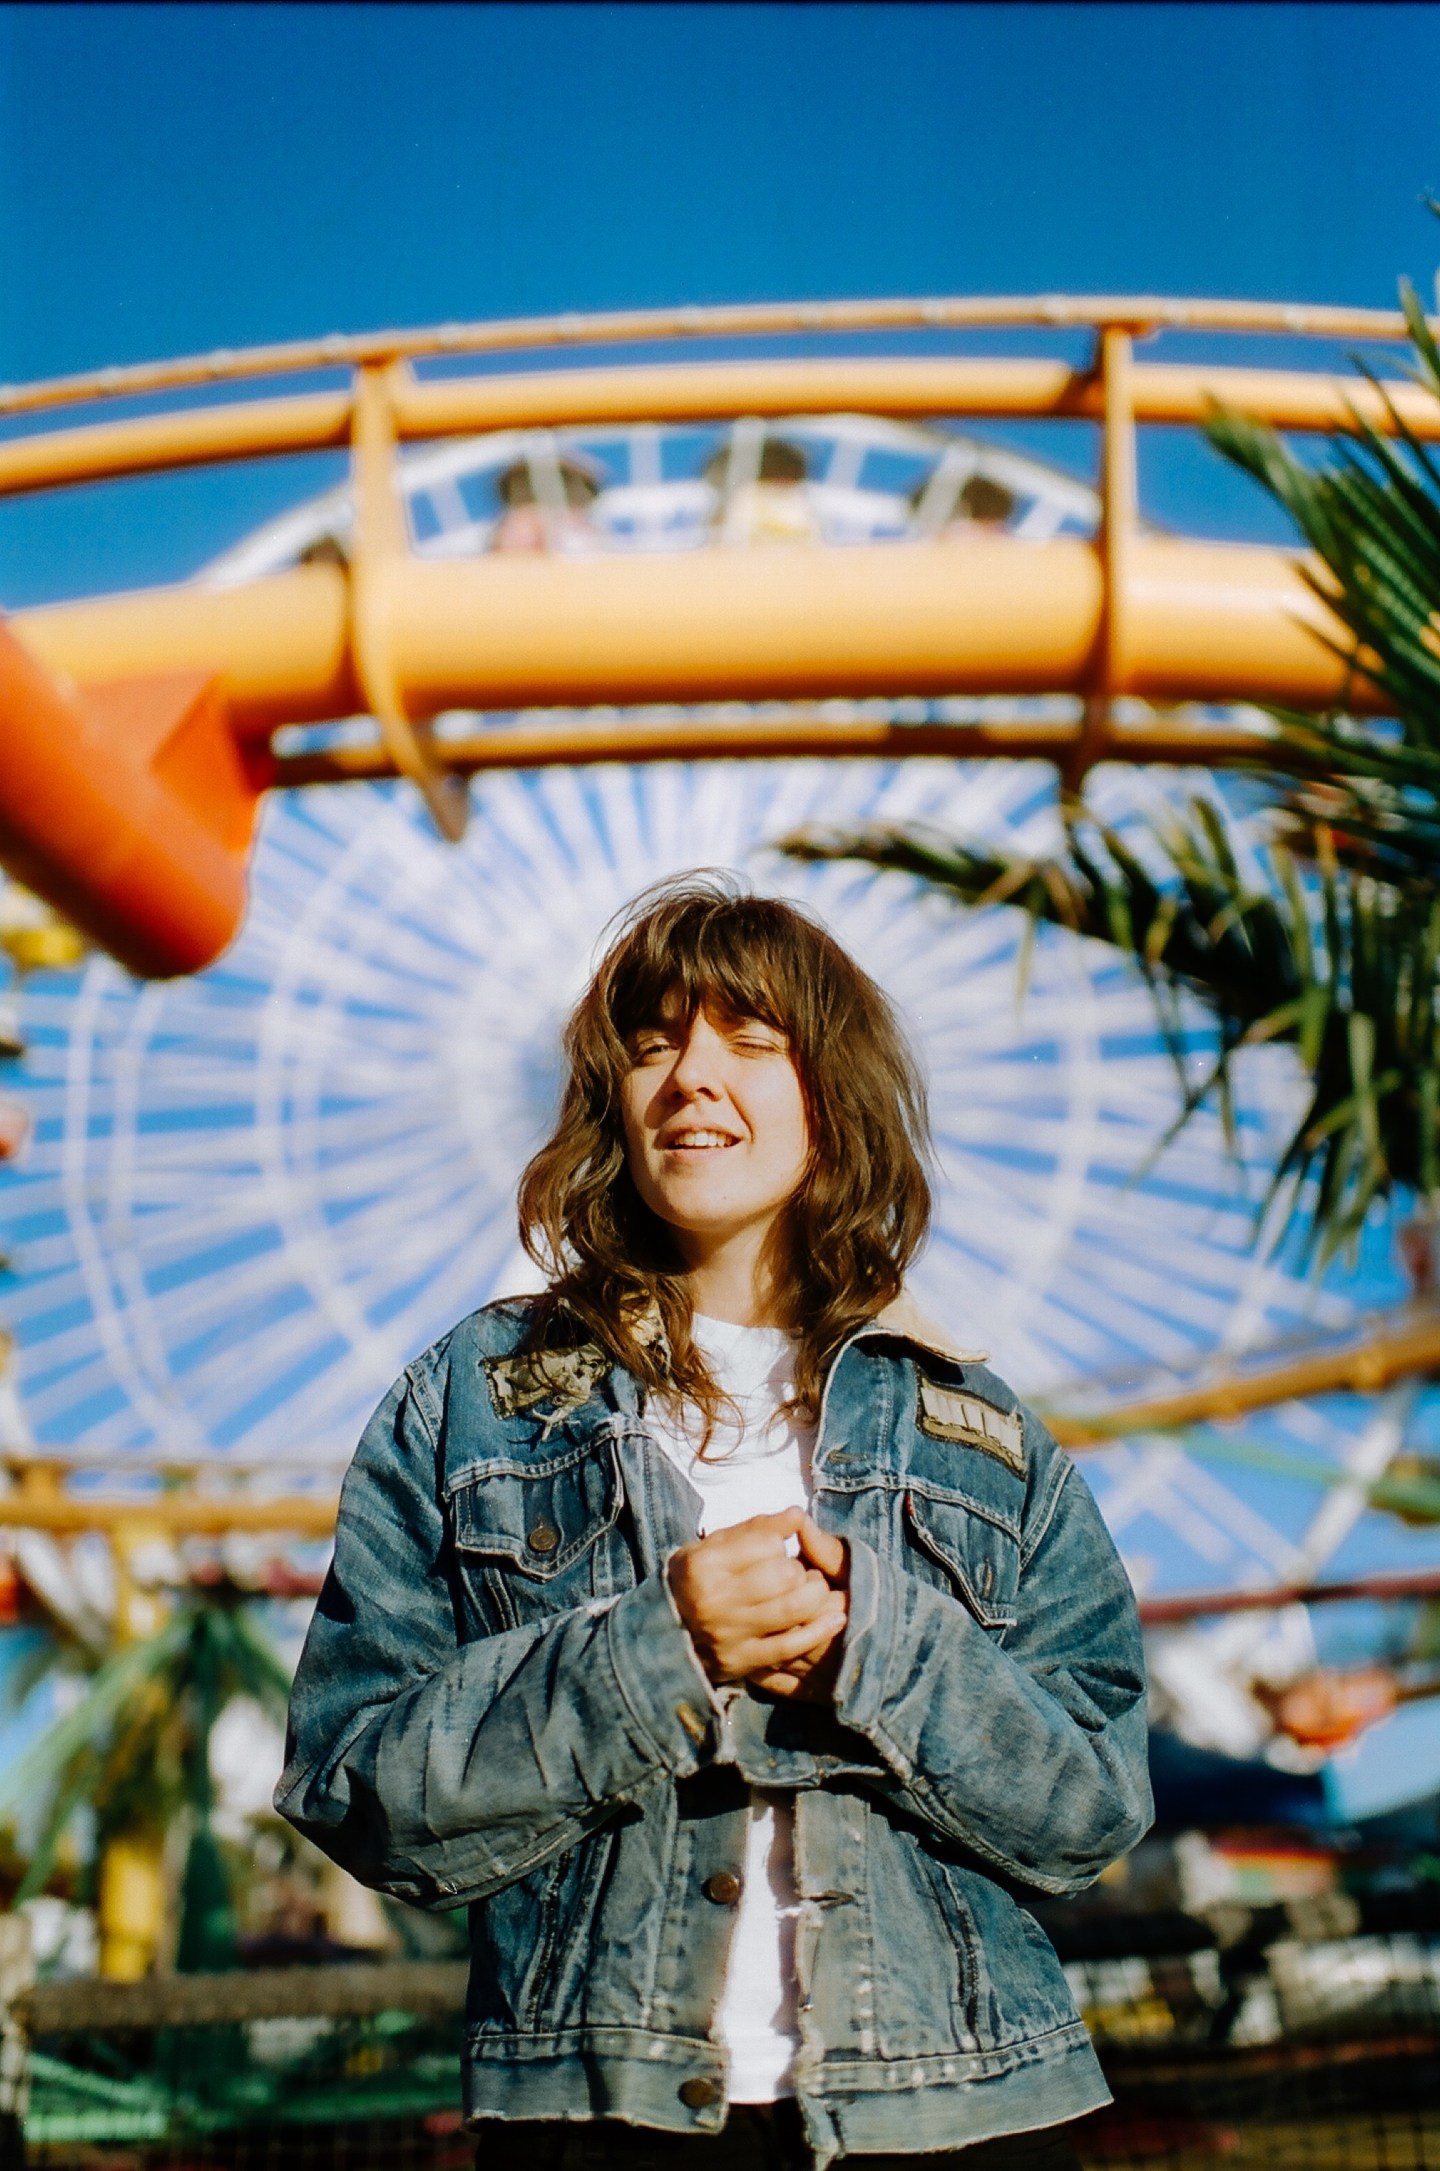 Courtney Barnett is still one of the cleverest rock writers around